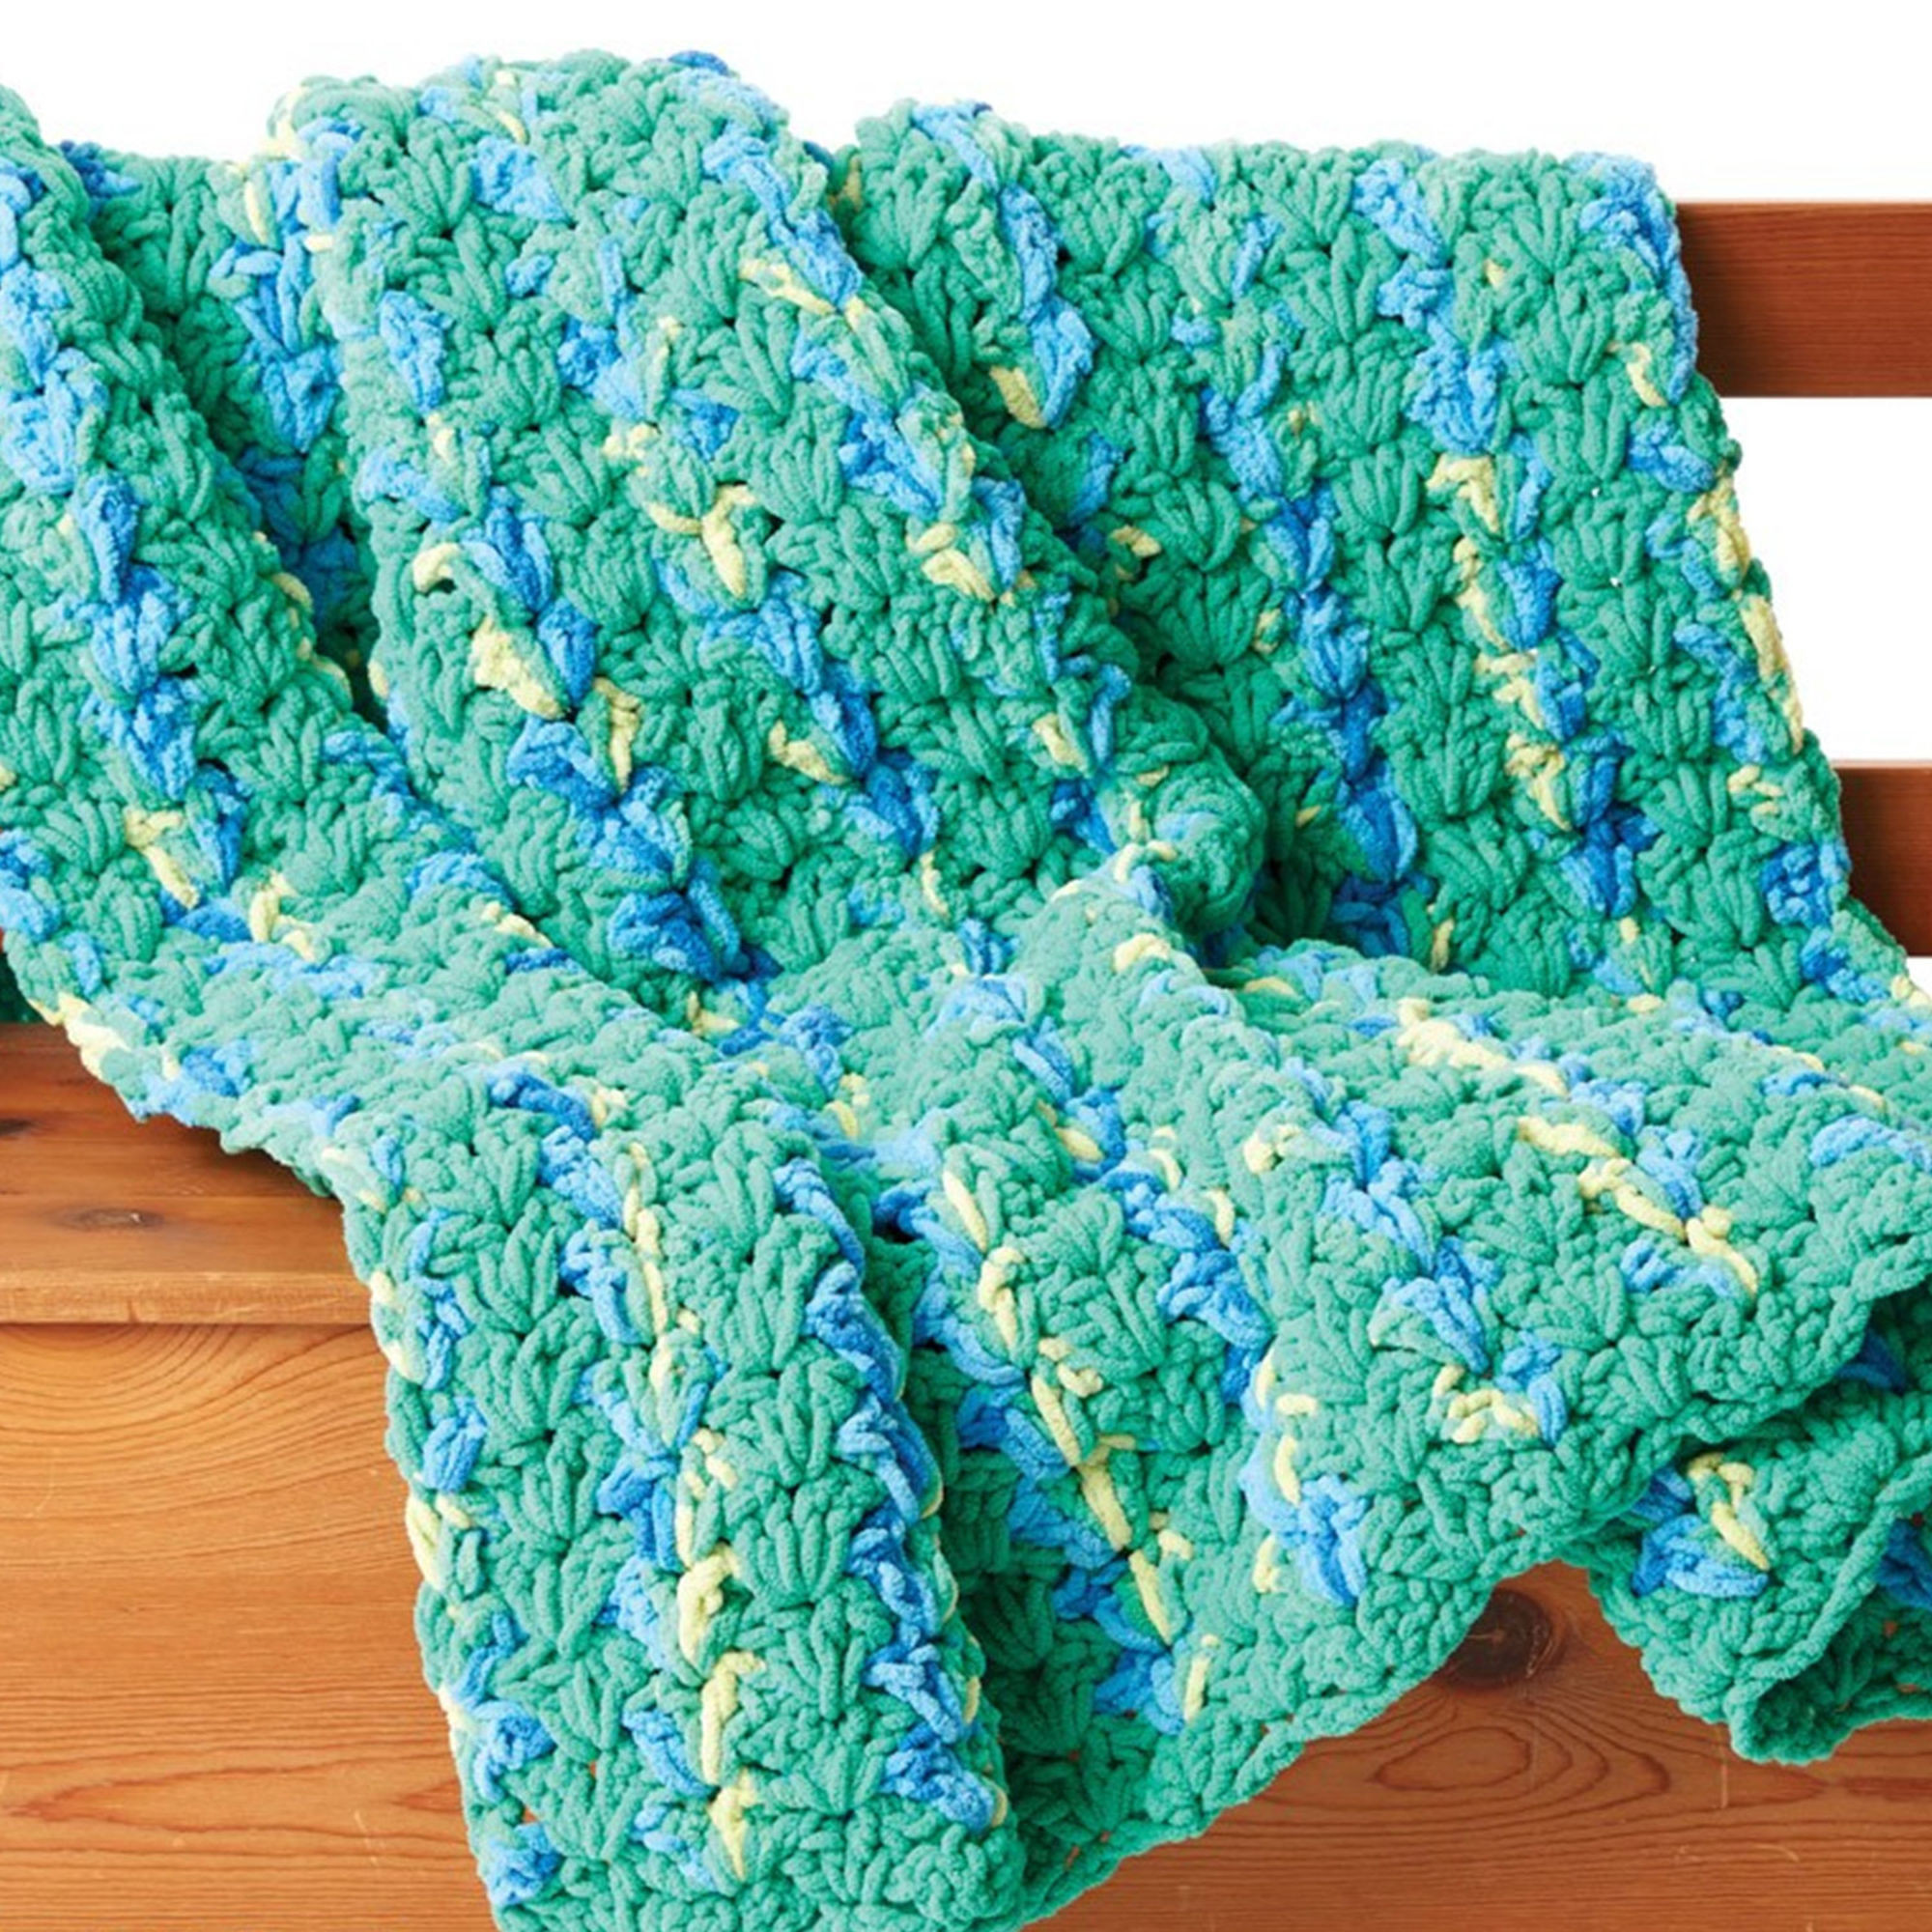 Bernat Crochet Blanket Inspirational Bernat Bright and Easy Crochet Blanket Of Incredible 49 Images Bernat Crochet Blanket